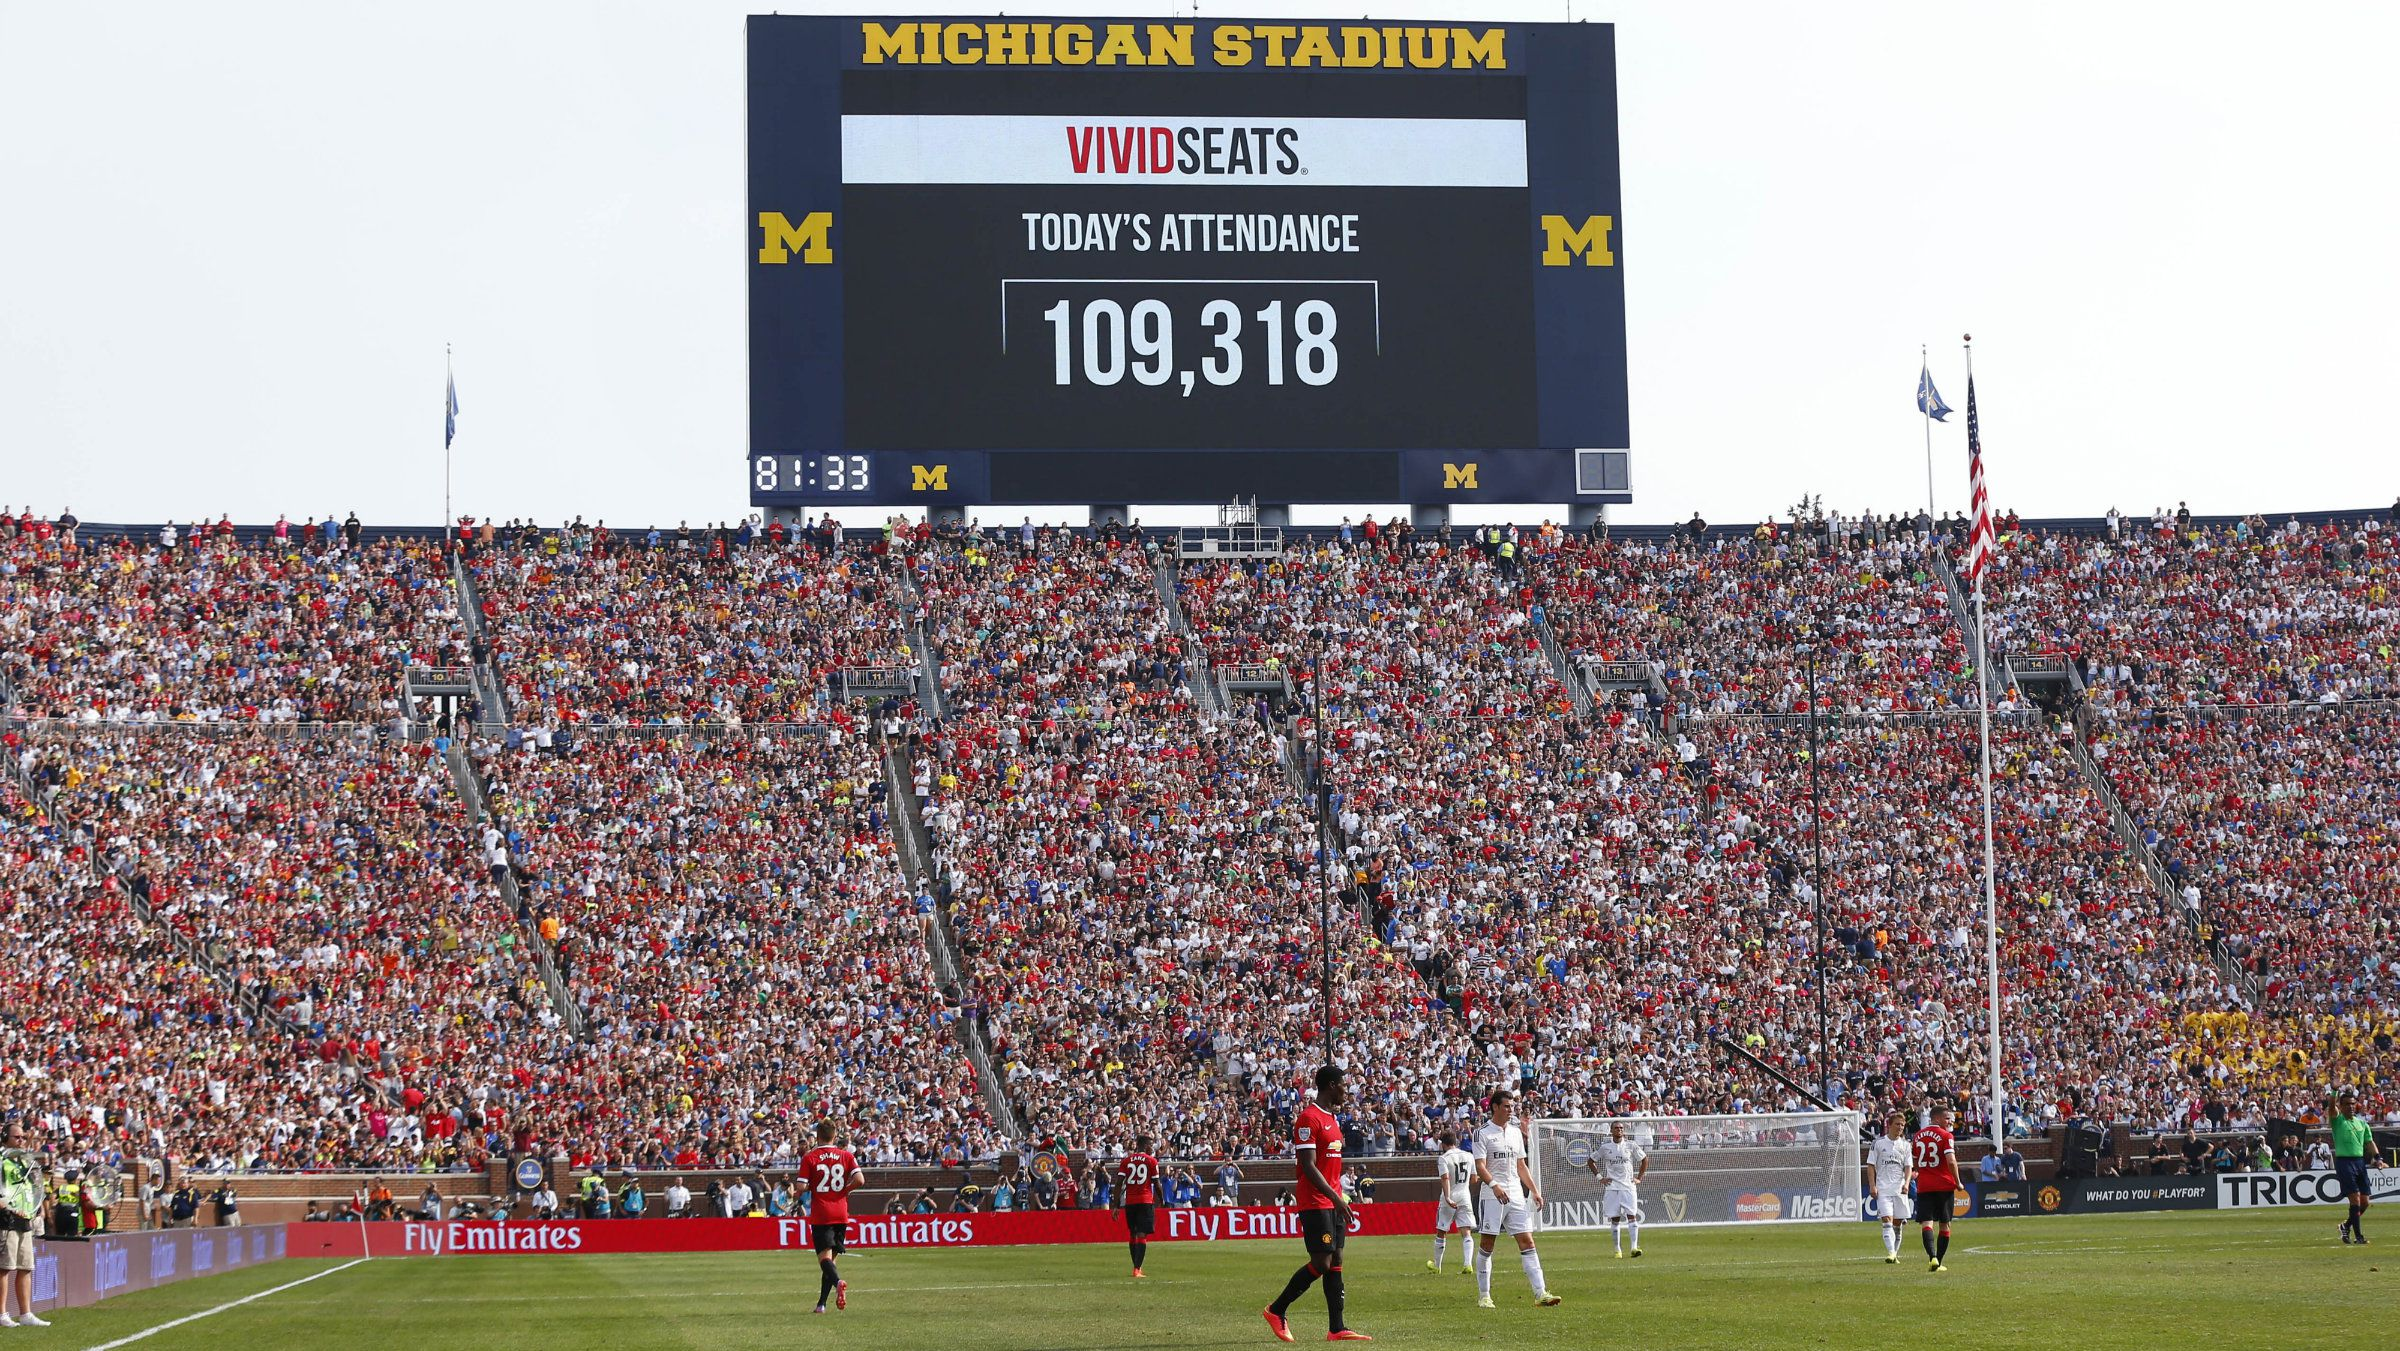 The scoreboard announces attendance of 109,318 during a Guinness International Champions Cup soccer match between Real Madrid and Manchester United at Michigan Stadium